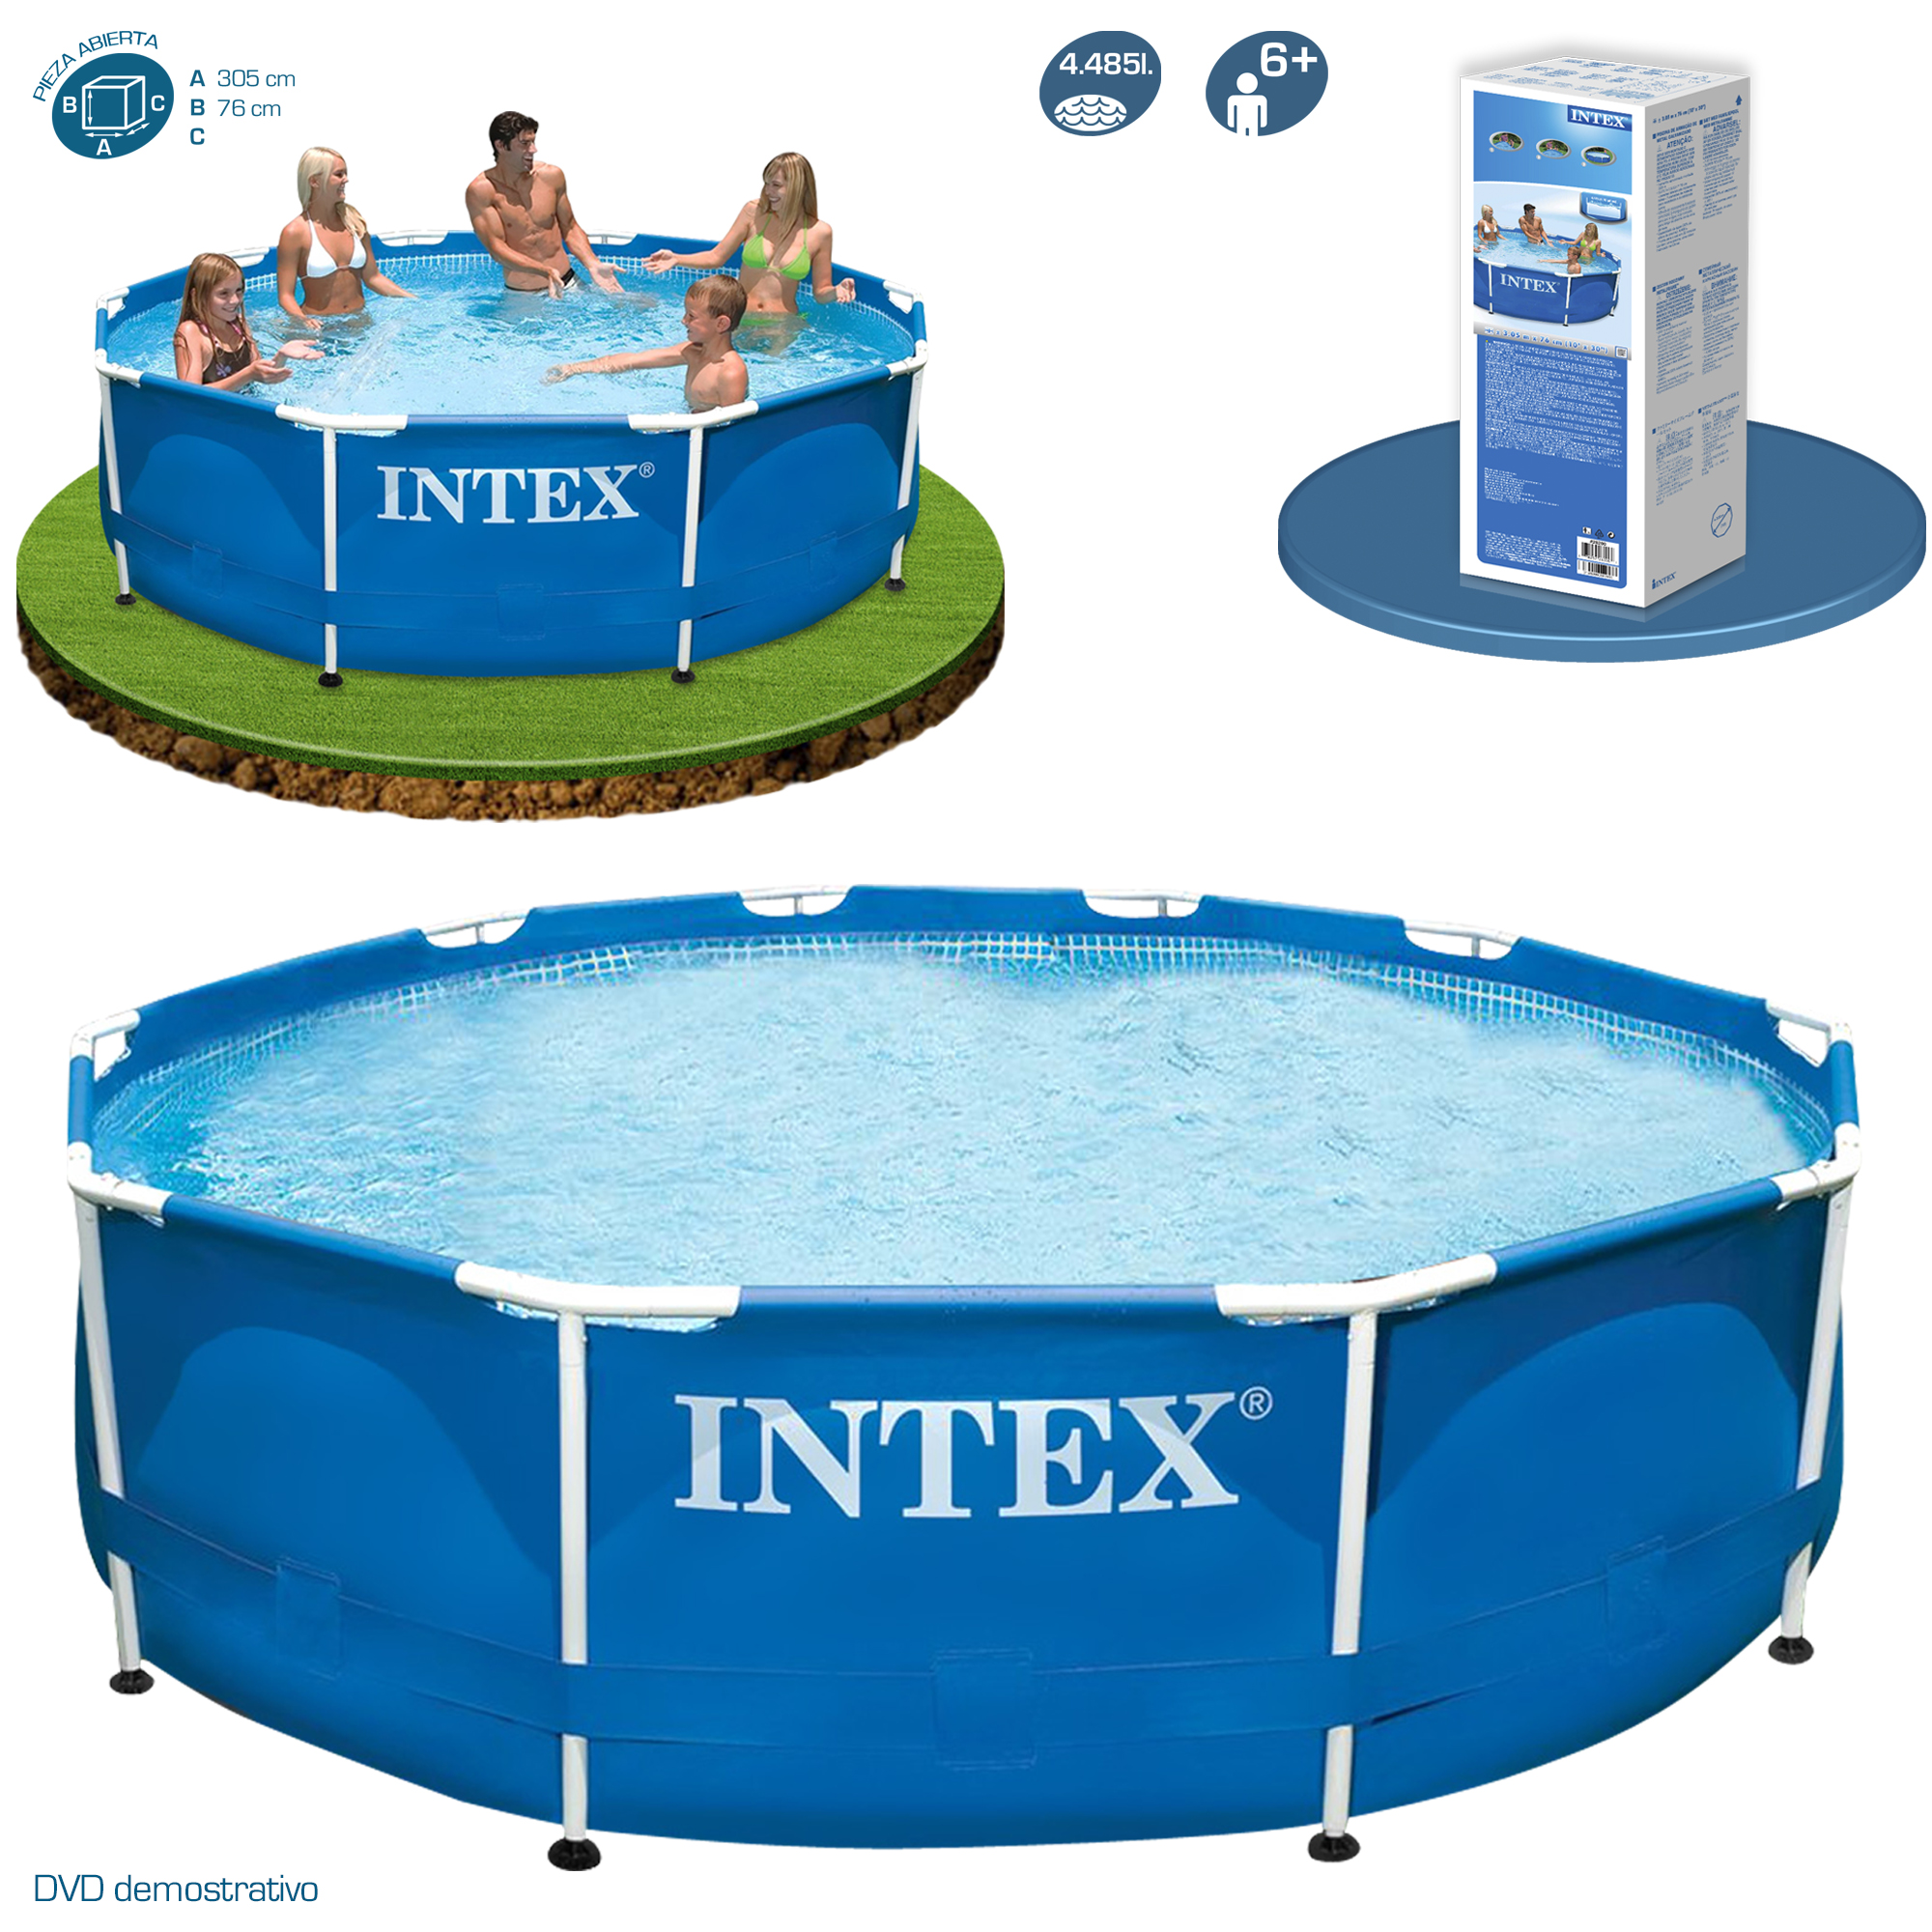 Piscina metal frame 305x76 intex 28200 28202 piscinas for Piscinas desmontables baratas intex